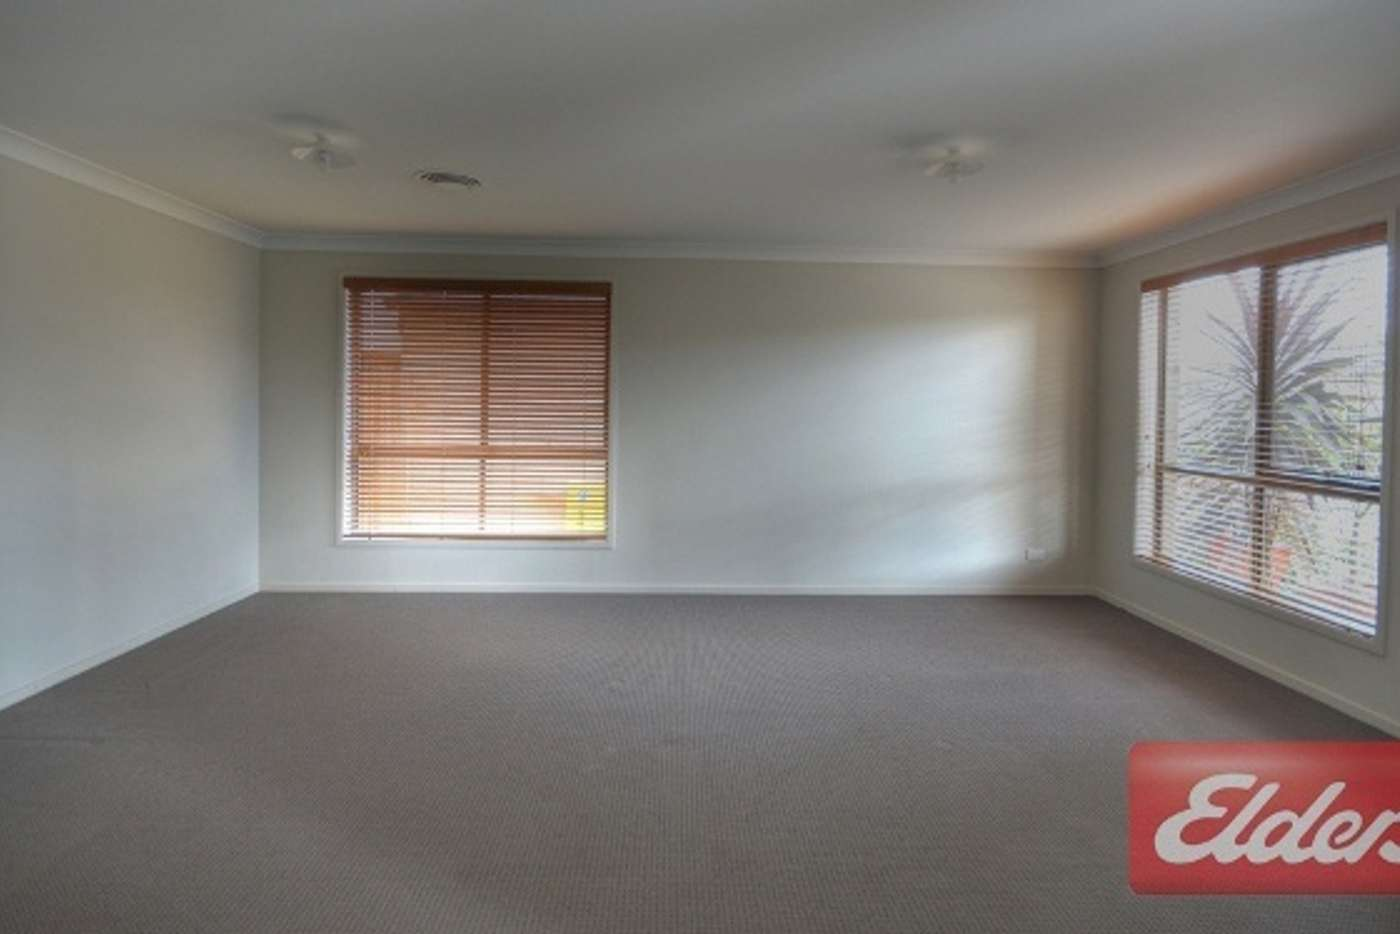 Sixth view of Homely house listing, 16 Adelong Parade, The Ponds NSW 2769